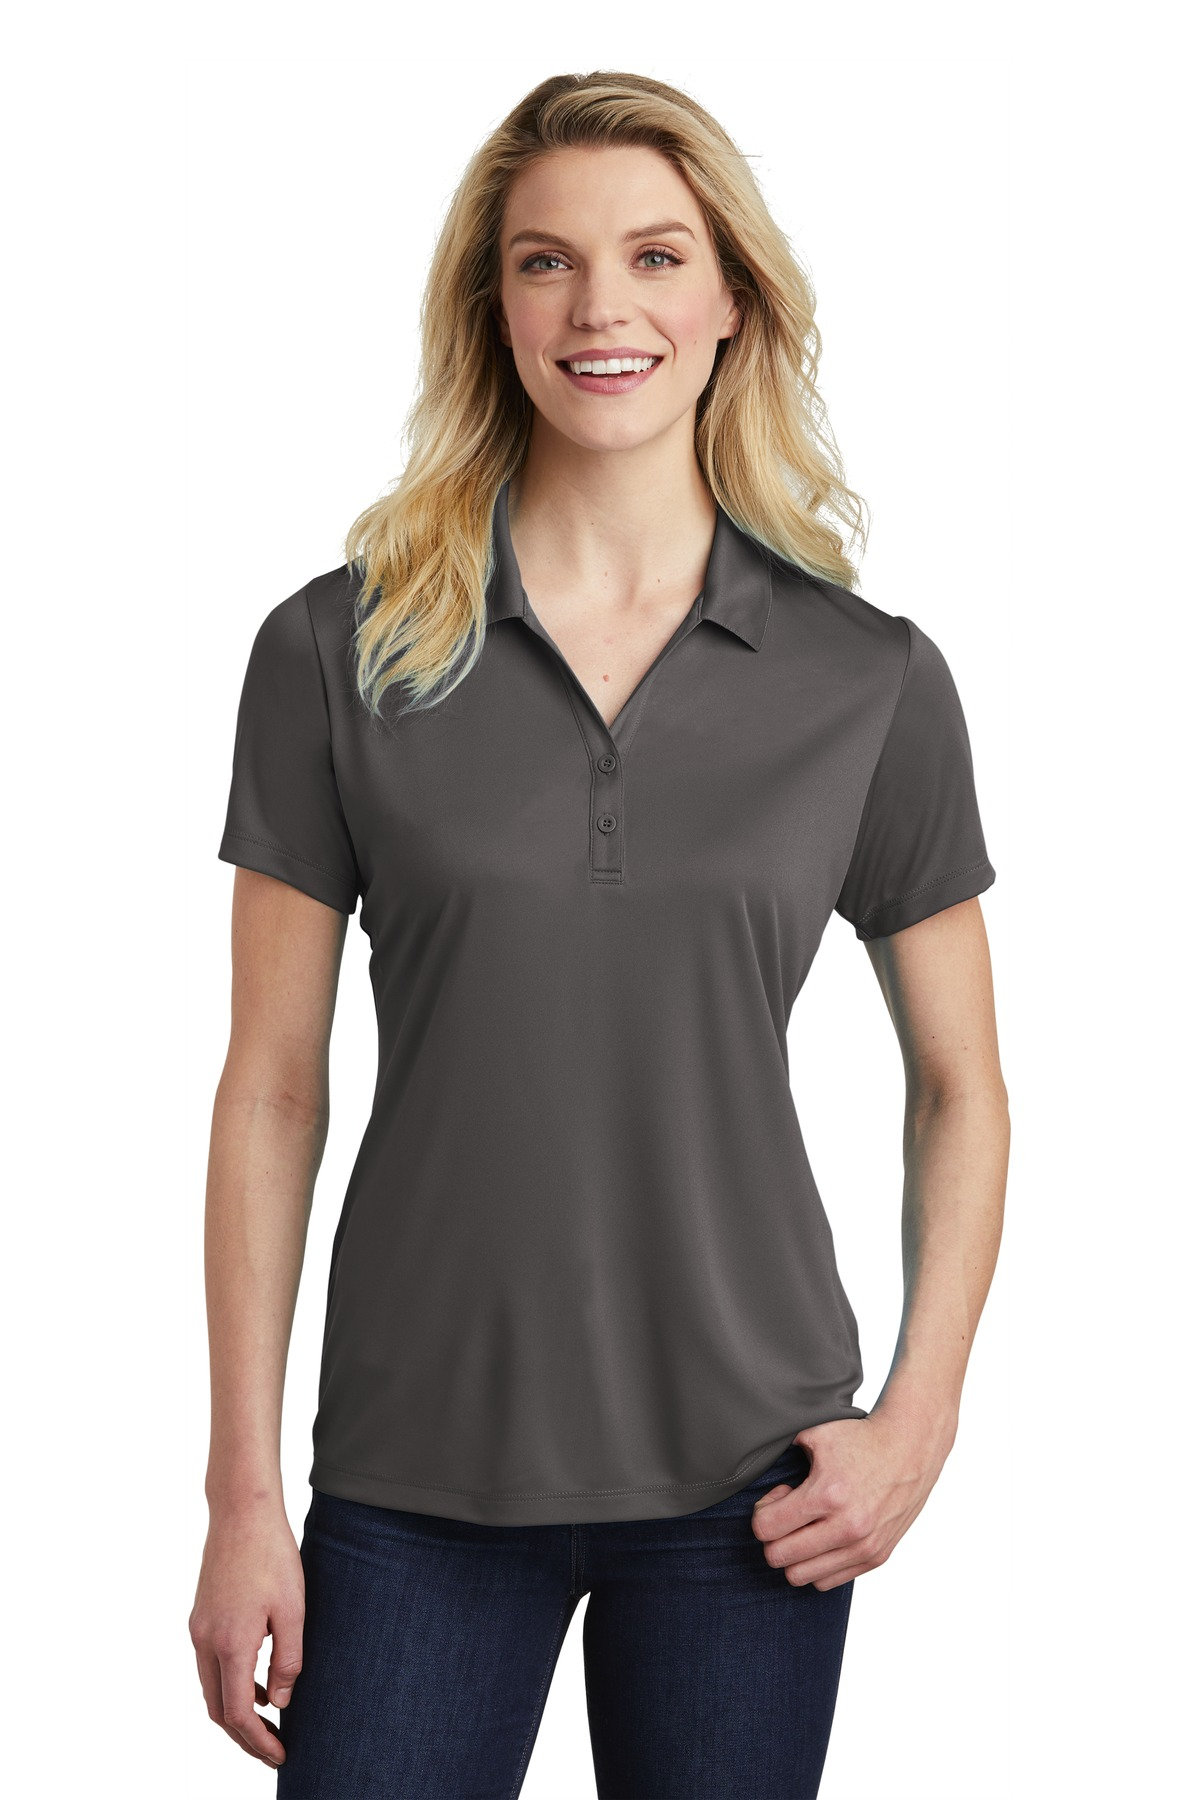 Sport-Tek  ®  Ladies PosiCharge  ®  Competitor  ™  Polo. LST550 - Iron Grey